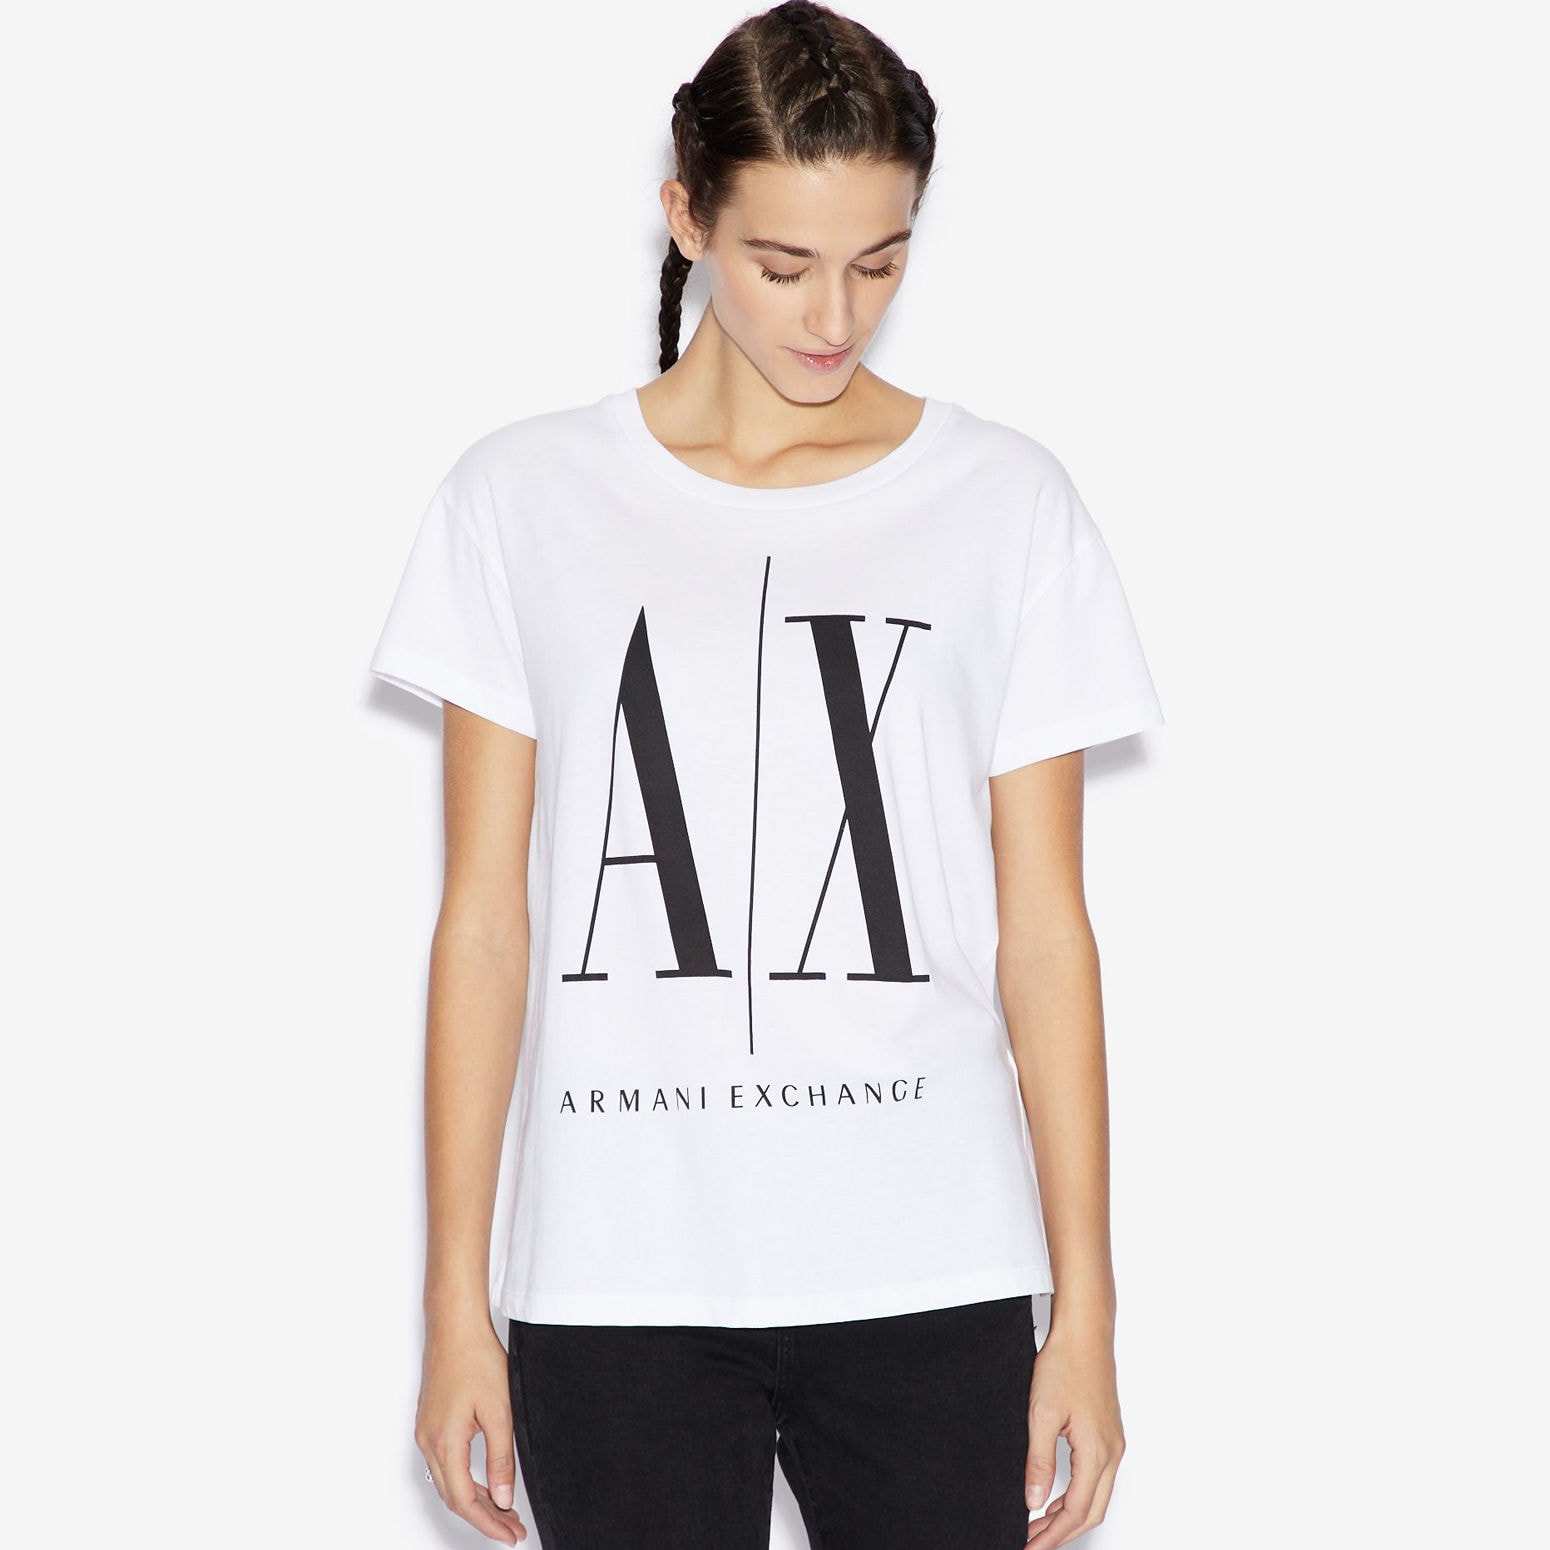 567ab029af Armani Exchange Women s Clothing   Accessories